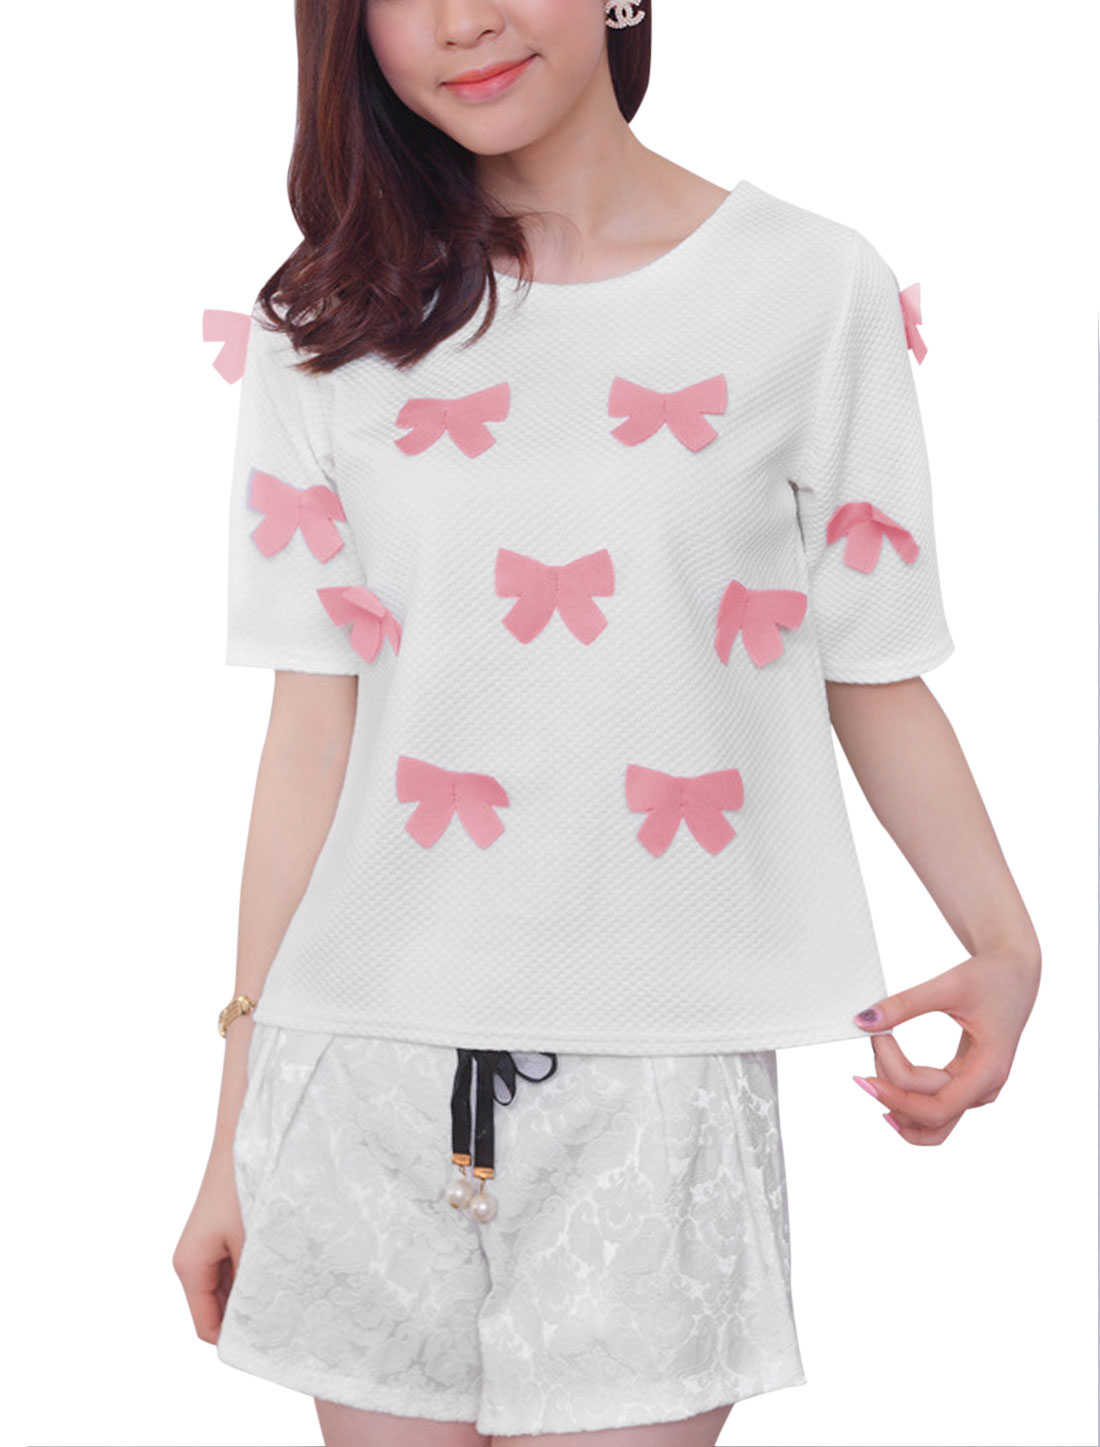 Lady White Pink Round Neck Short Sleeve Butterfly Applique Design T-Shirt XS